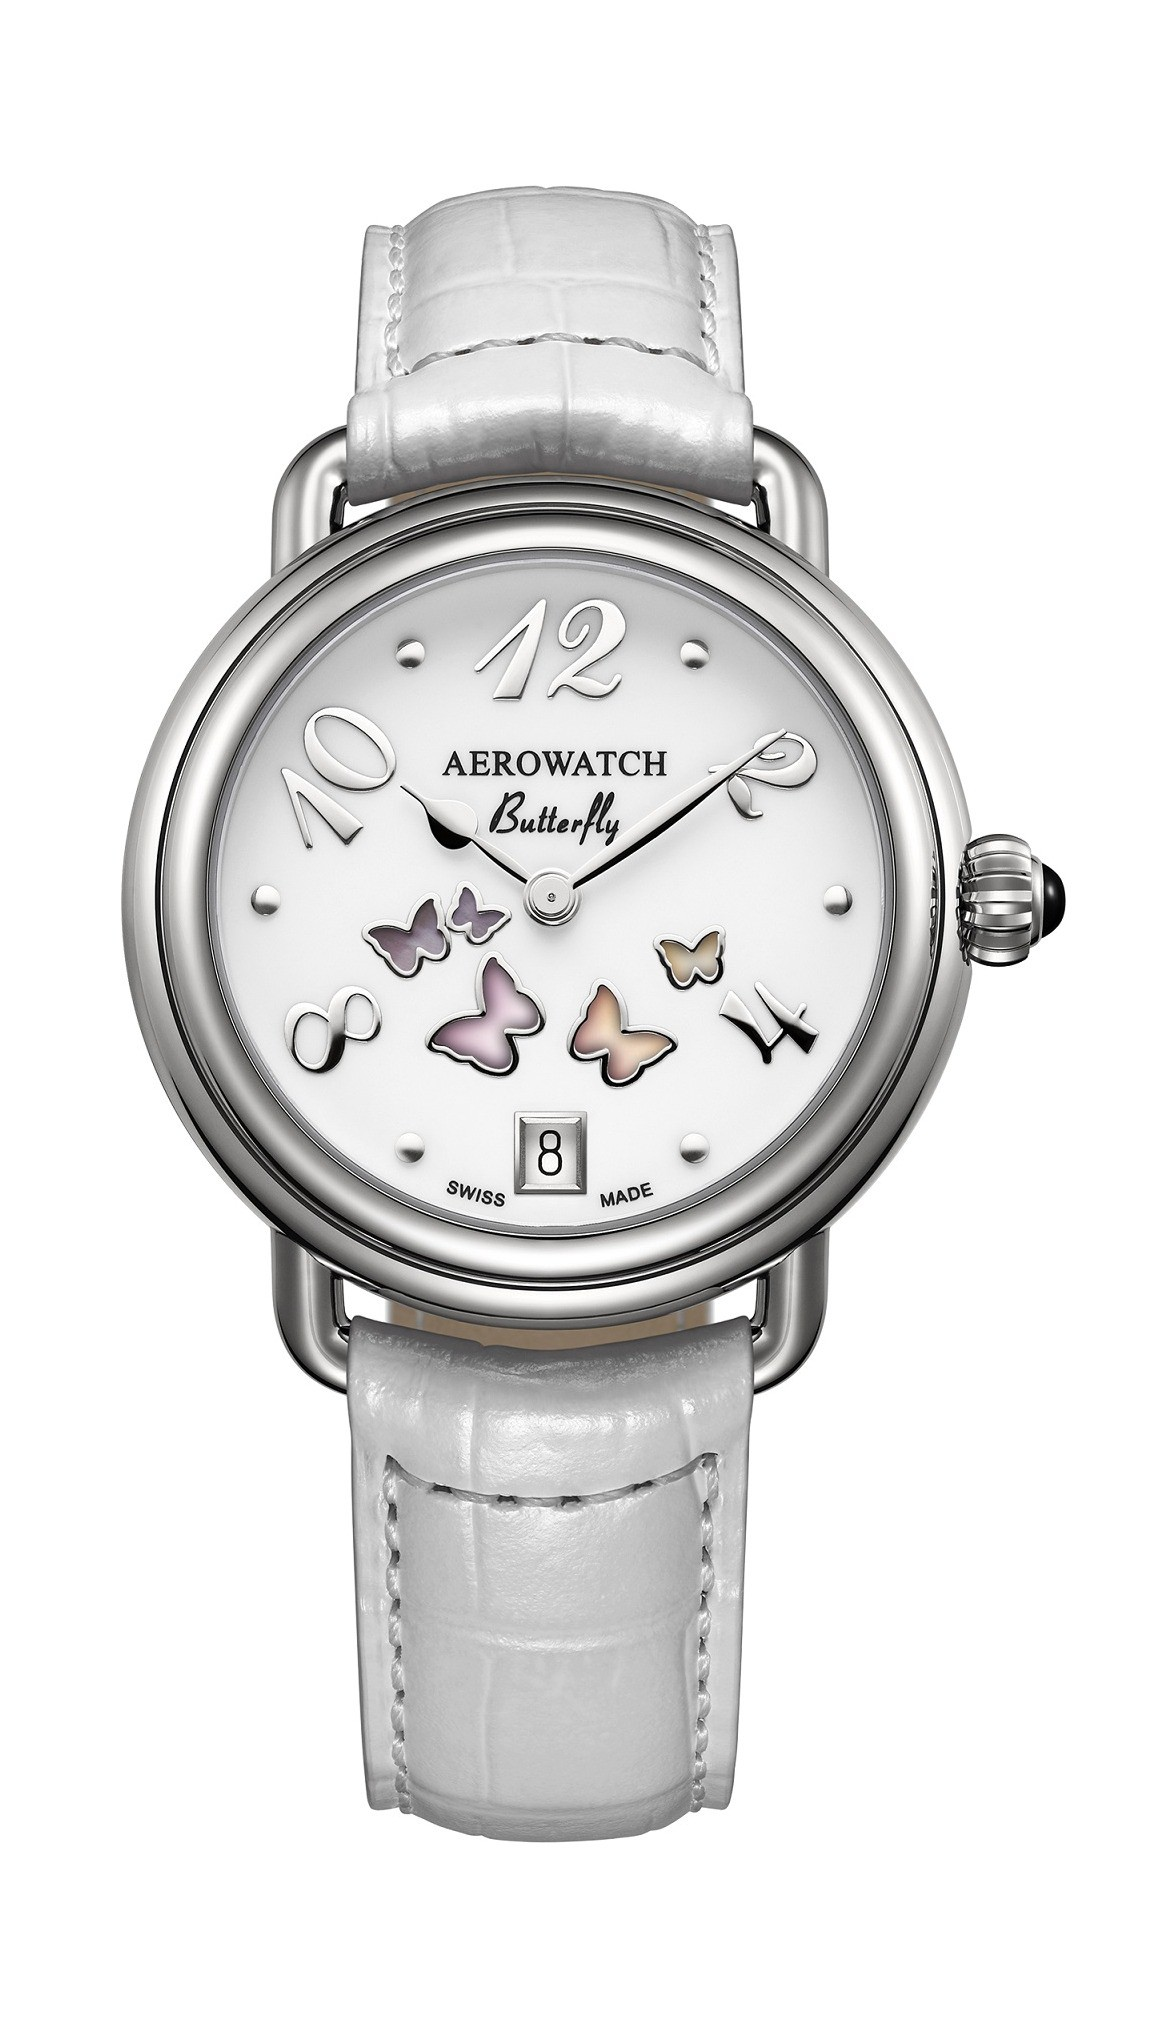 Montre Aerowatch 1942 Butterfly Lady